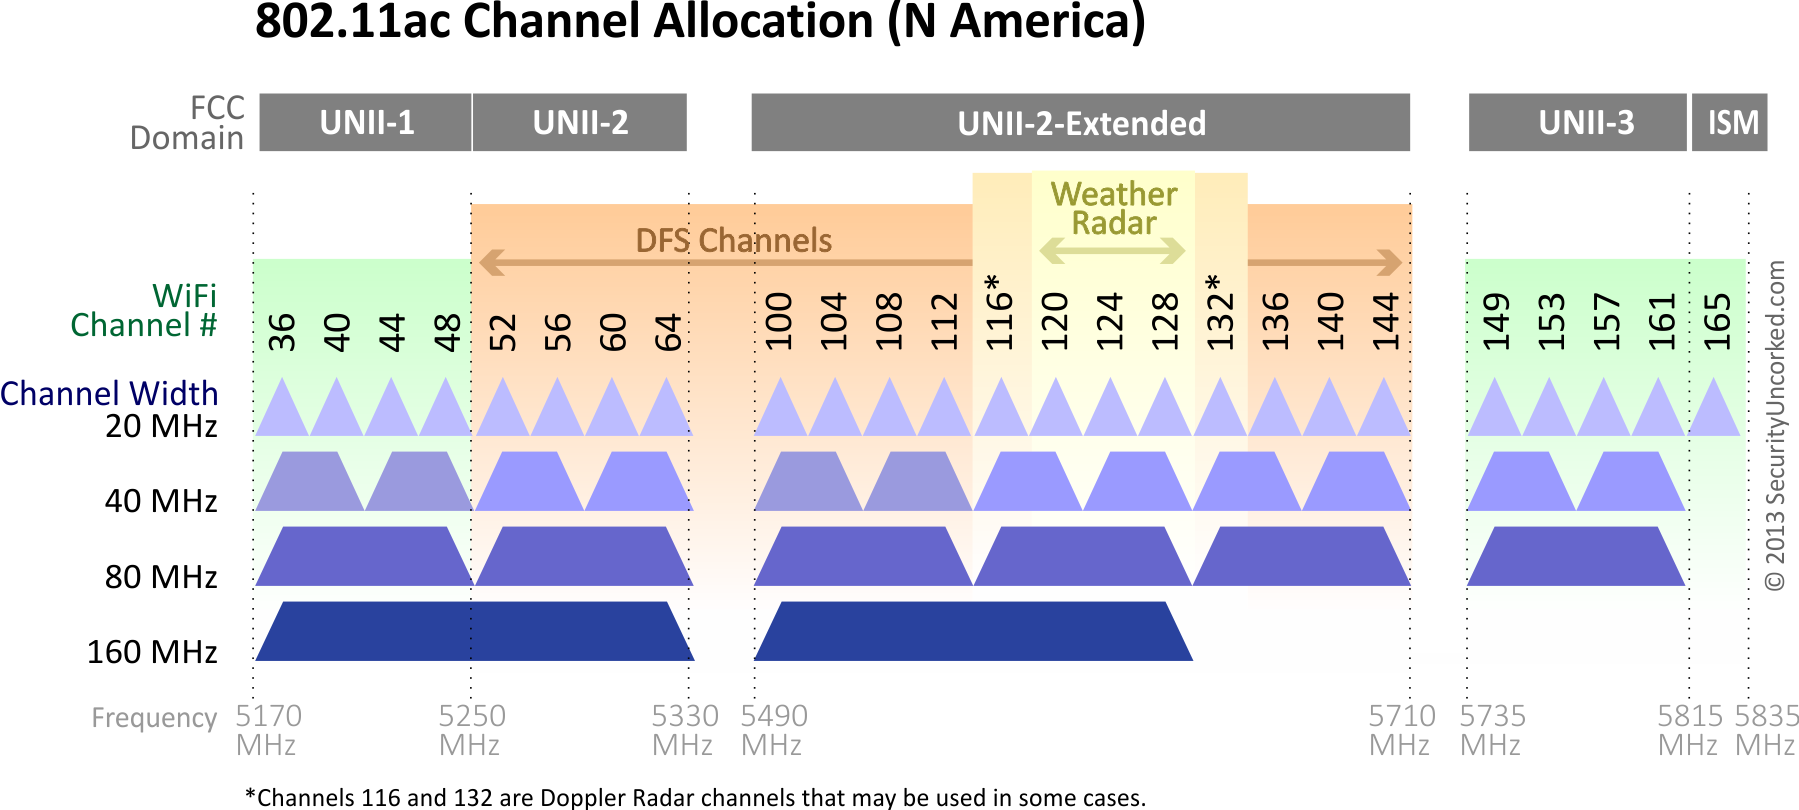 Dynamic Frequency Selection Part 3: The Channel Dilemma | IT